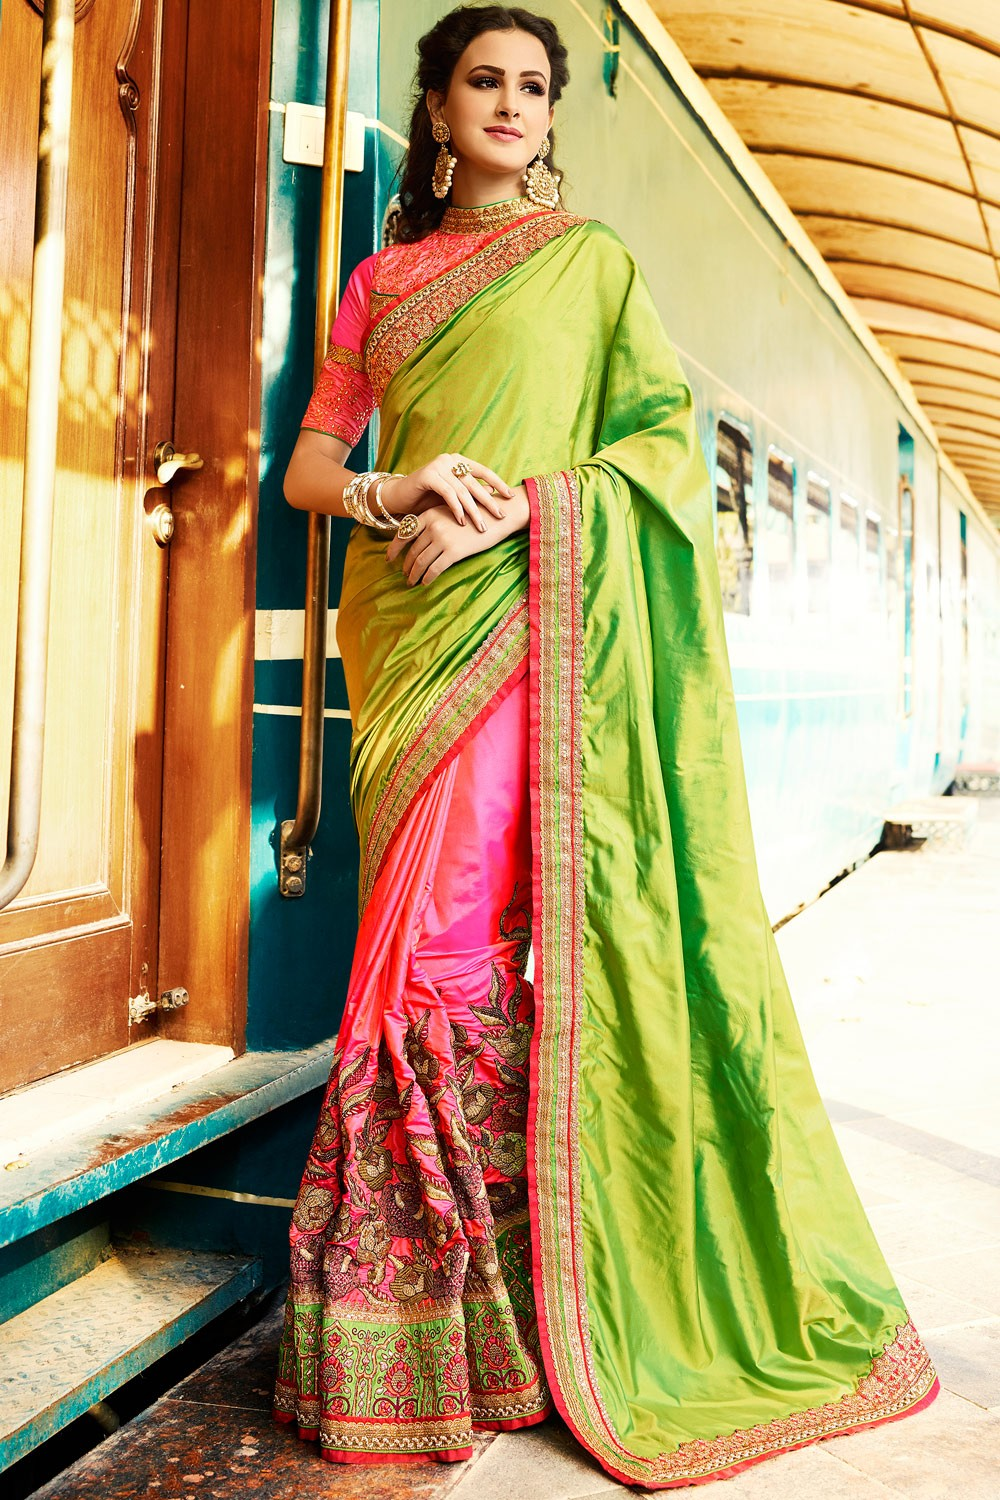 Paaneri Designer Shaded Parrot Green With Pink Color Embroidery Art Silk Saree With Embroidery Border Pallu-Product Code-17119700901